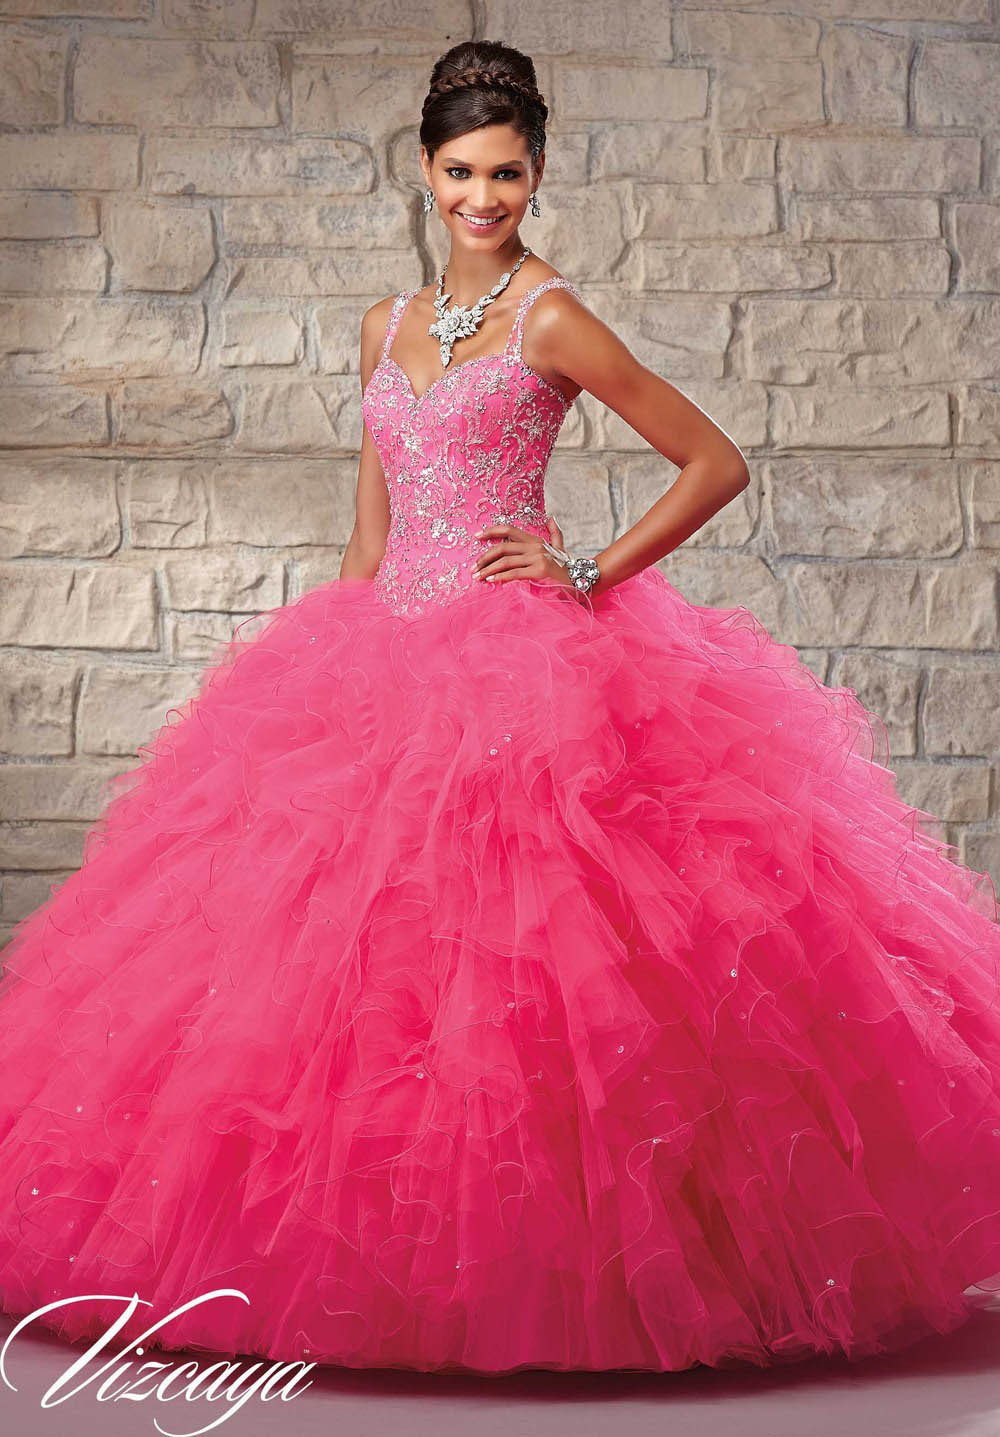 vestido debutante 15 anos Sweetheart Pink Quinceanera Dress Ball Gown Ruffles vestidos de quinceanera 2015 Prom Organza - Weddings & Events Collection store